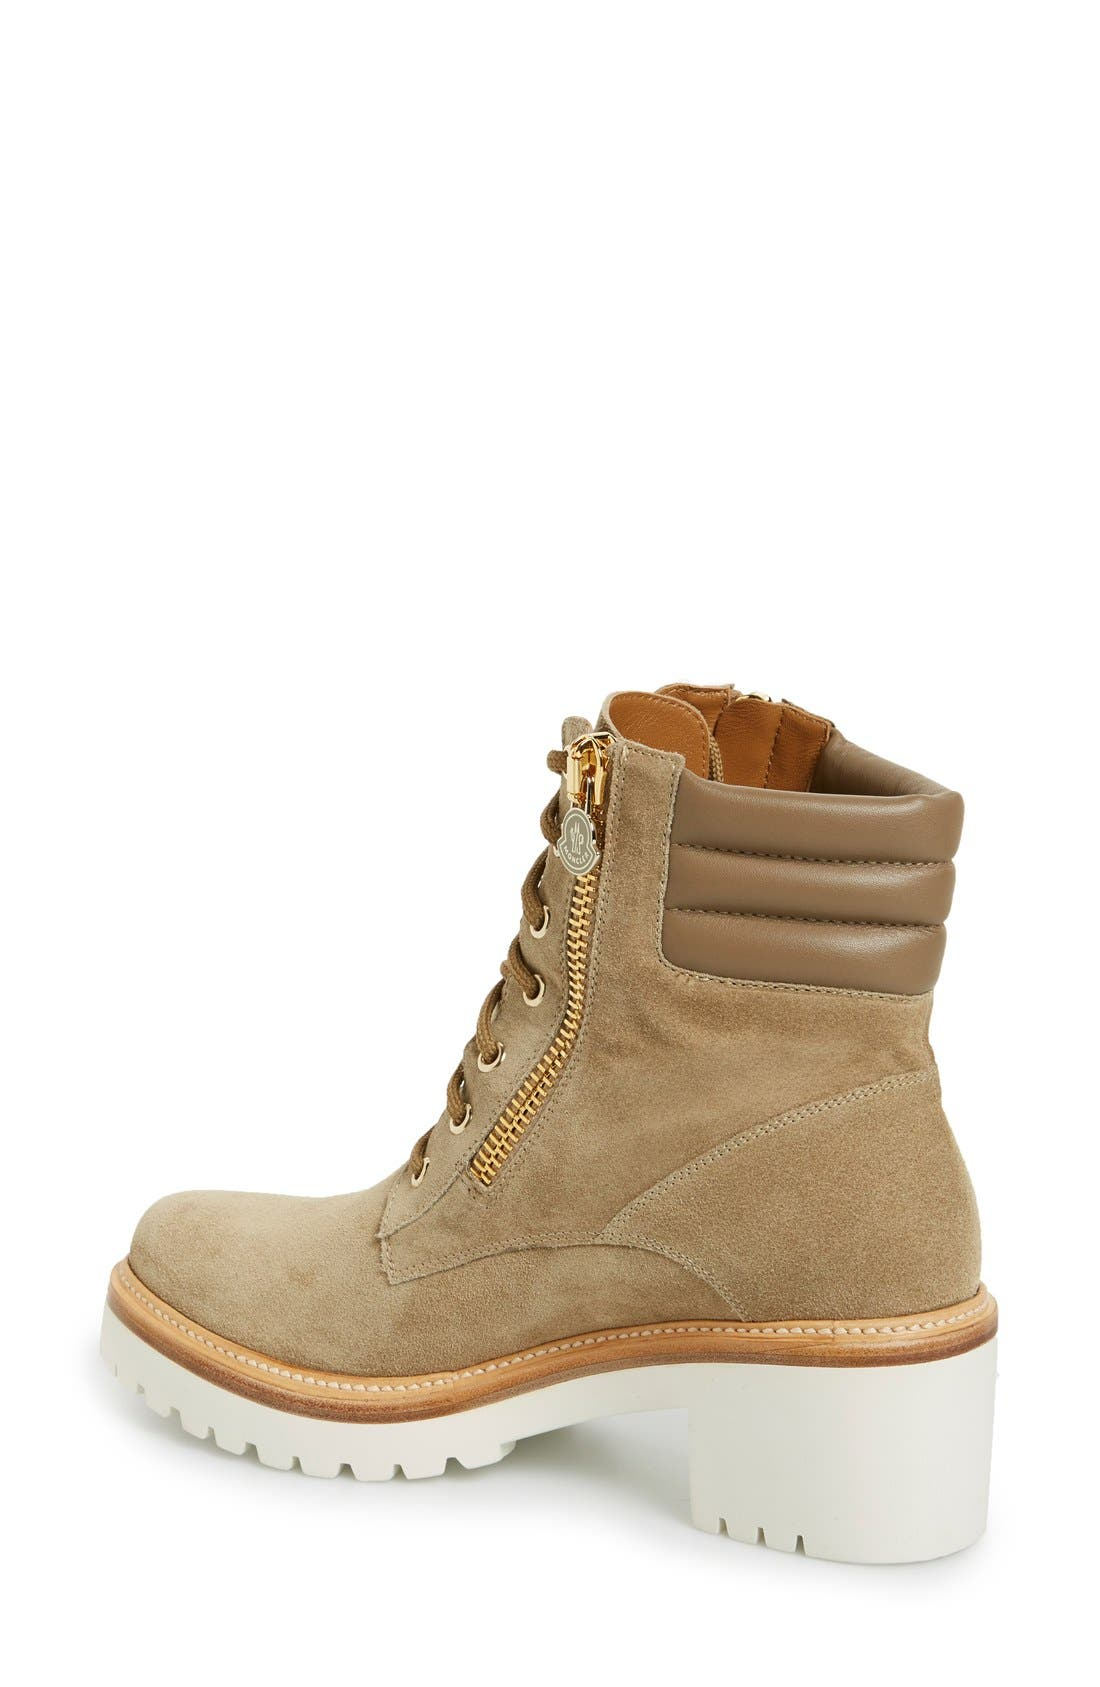 'Viviane' Hiker Boot,                             Alternate thumbnail 2, color,                             Brown Suede Calfskin